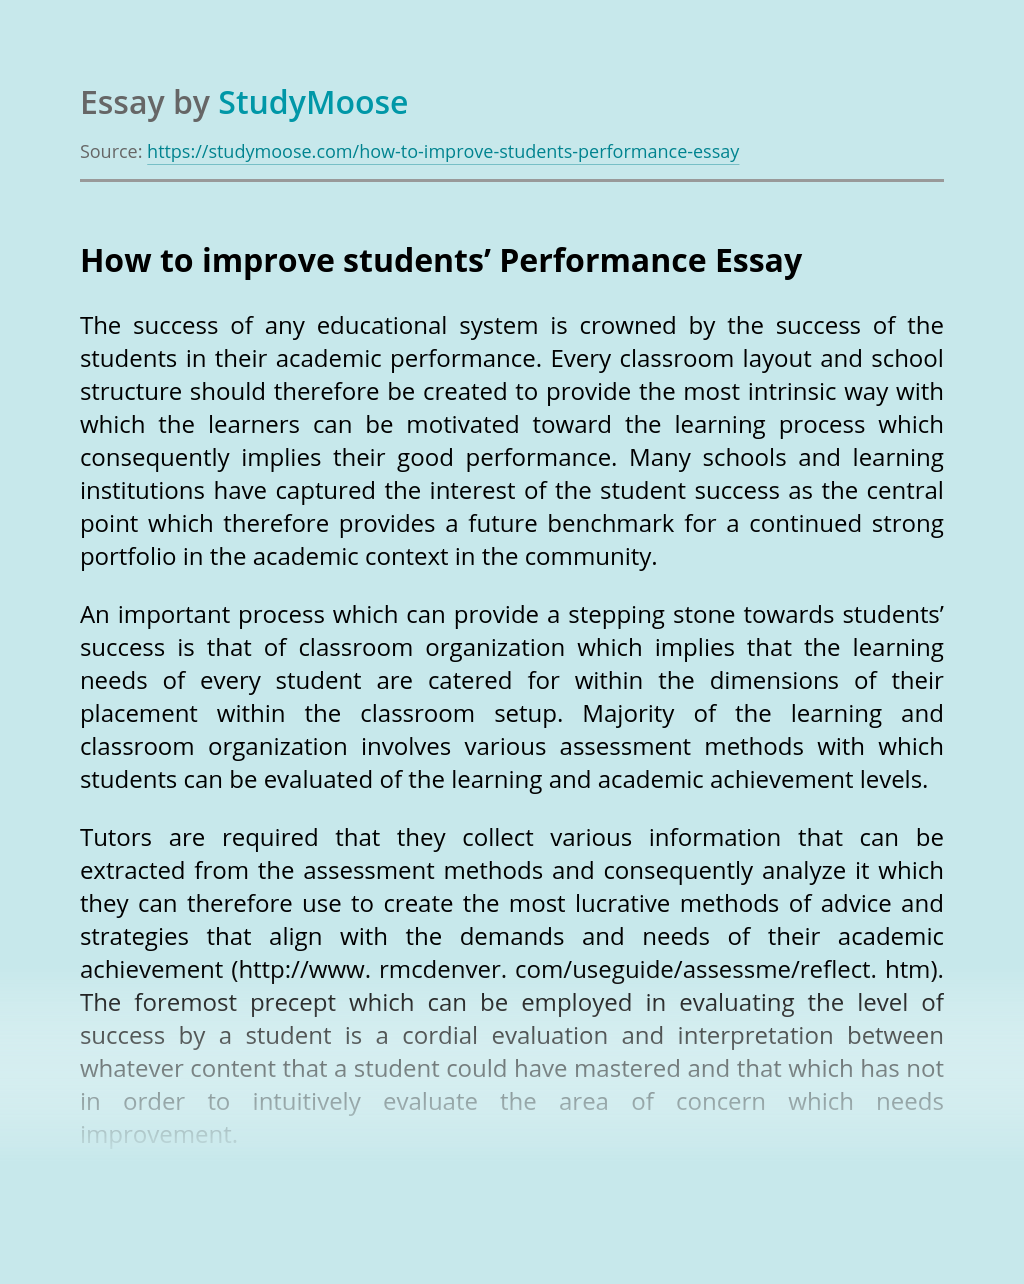 How to improve students' Performance